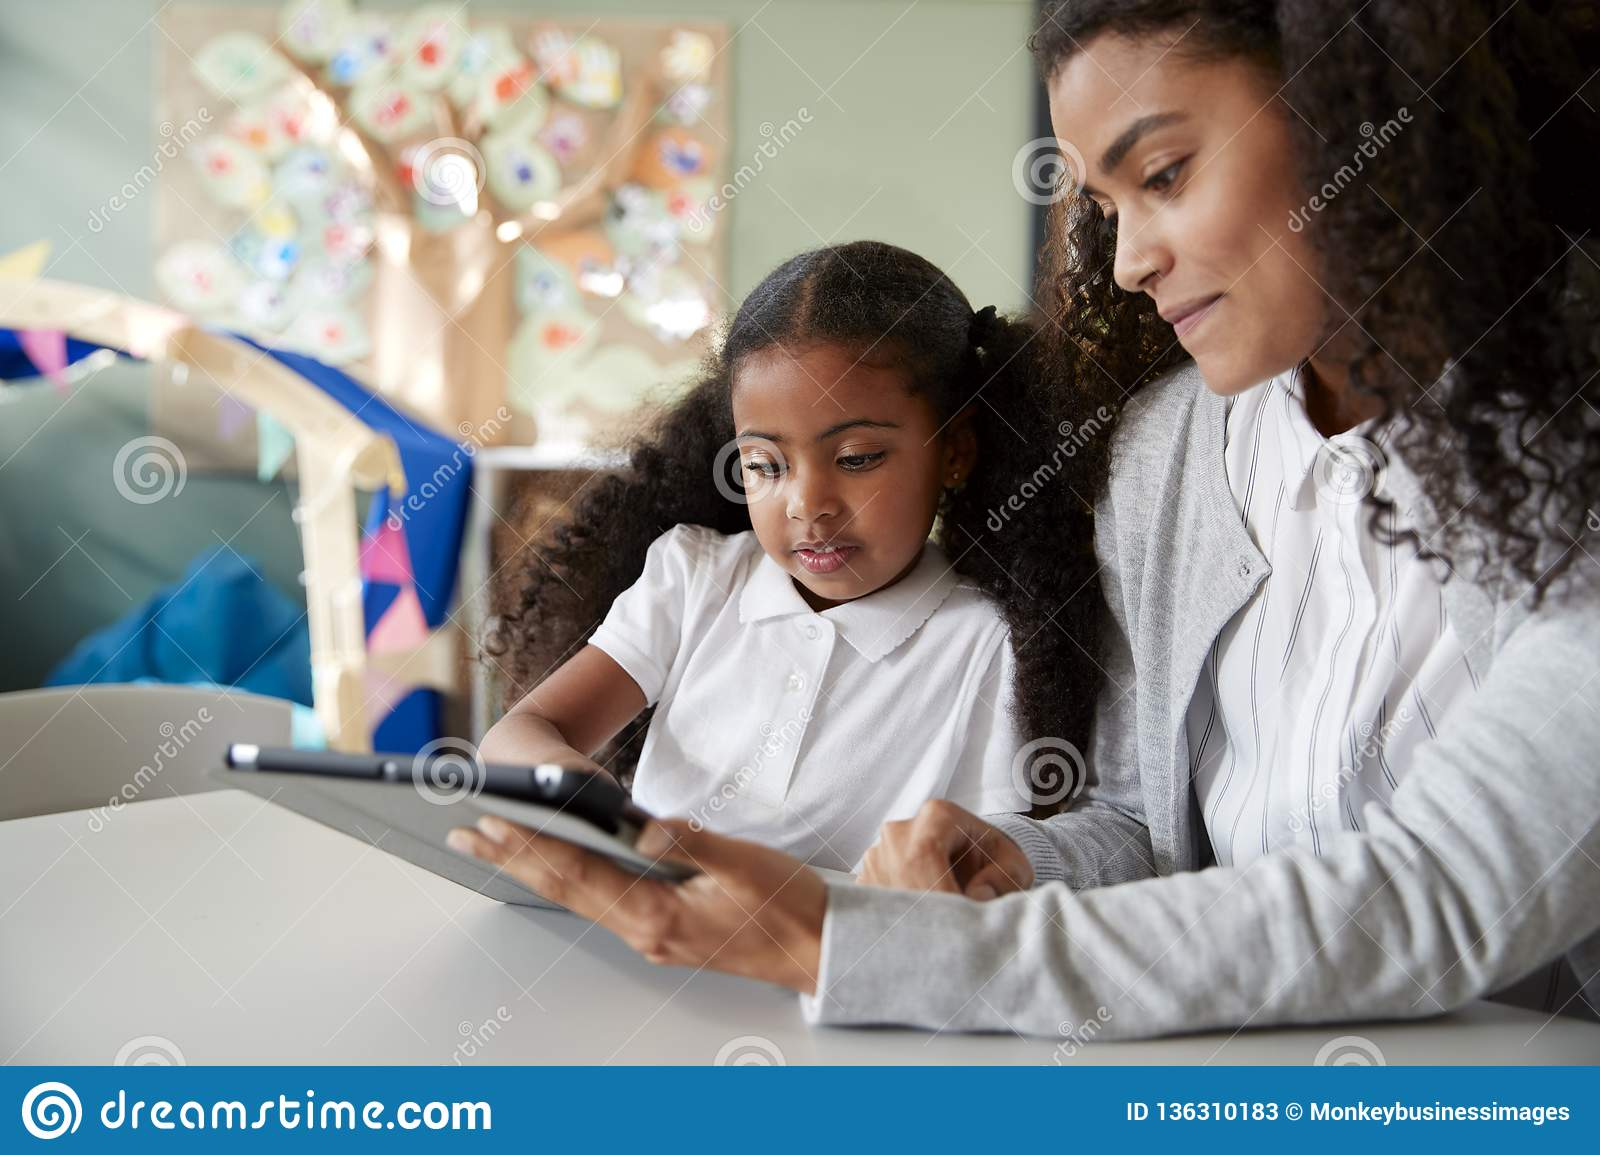 Close up of a young black schoolgirl sitting at a table in an infant school classroom learning one on one with a female teacher us